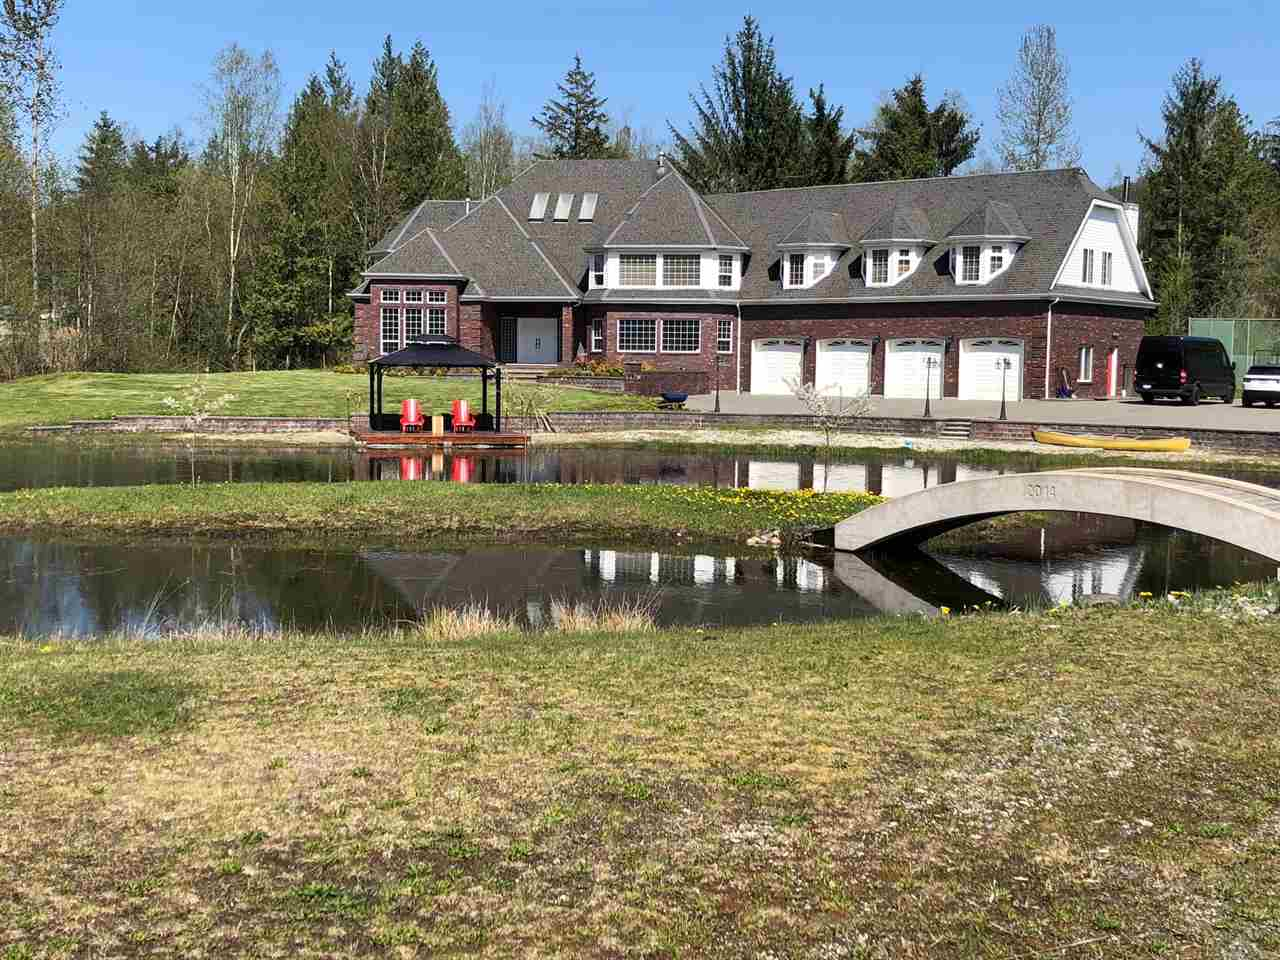 No words can fully describe this timeless classic designed home. Flat nearly 5 acres on top of the Sumas Mountain with over 6700SF of beautiful living space plus attached over-sized 4 car garage. All 5 bedrooms with ensuite bathrooms and huge walk-in closets. Entertainment sized Kitchen with built-in Thermador appliances. Huge man-made trout stocked lake even has white sand beach, fountain and concrete bridge to the little island. Almost every inch of interior is redone with high-end materials by master tradesmen. It just feels like staying in 5 star resort all year round. Helicopter pad, Tennis/Basket ball court, Automatic gate, Diesel backup generator. There is nothing else like it on Sumas Mountain.